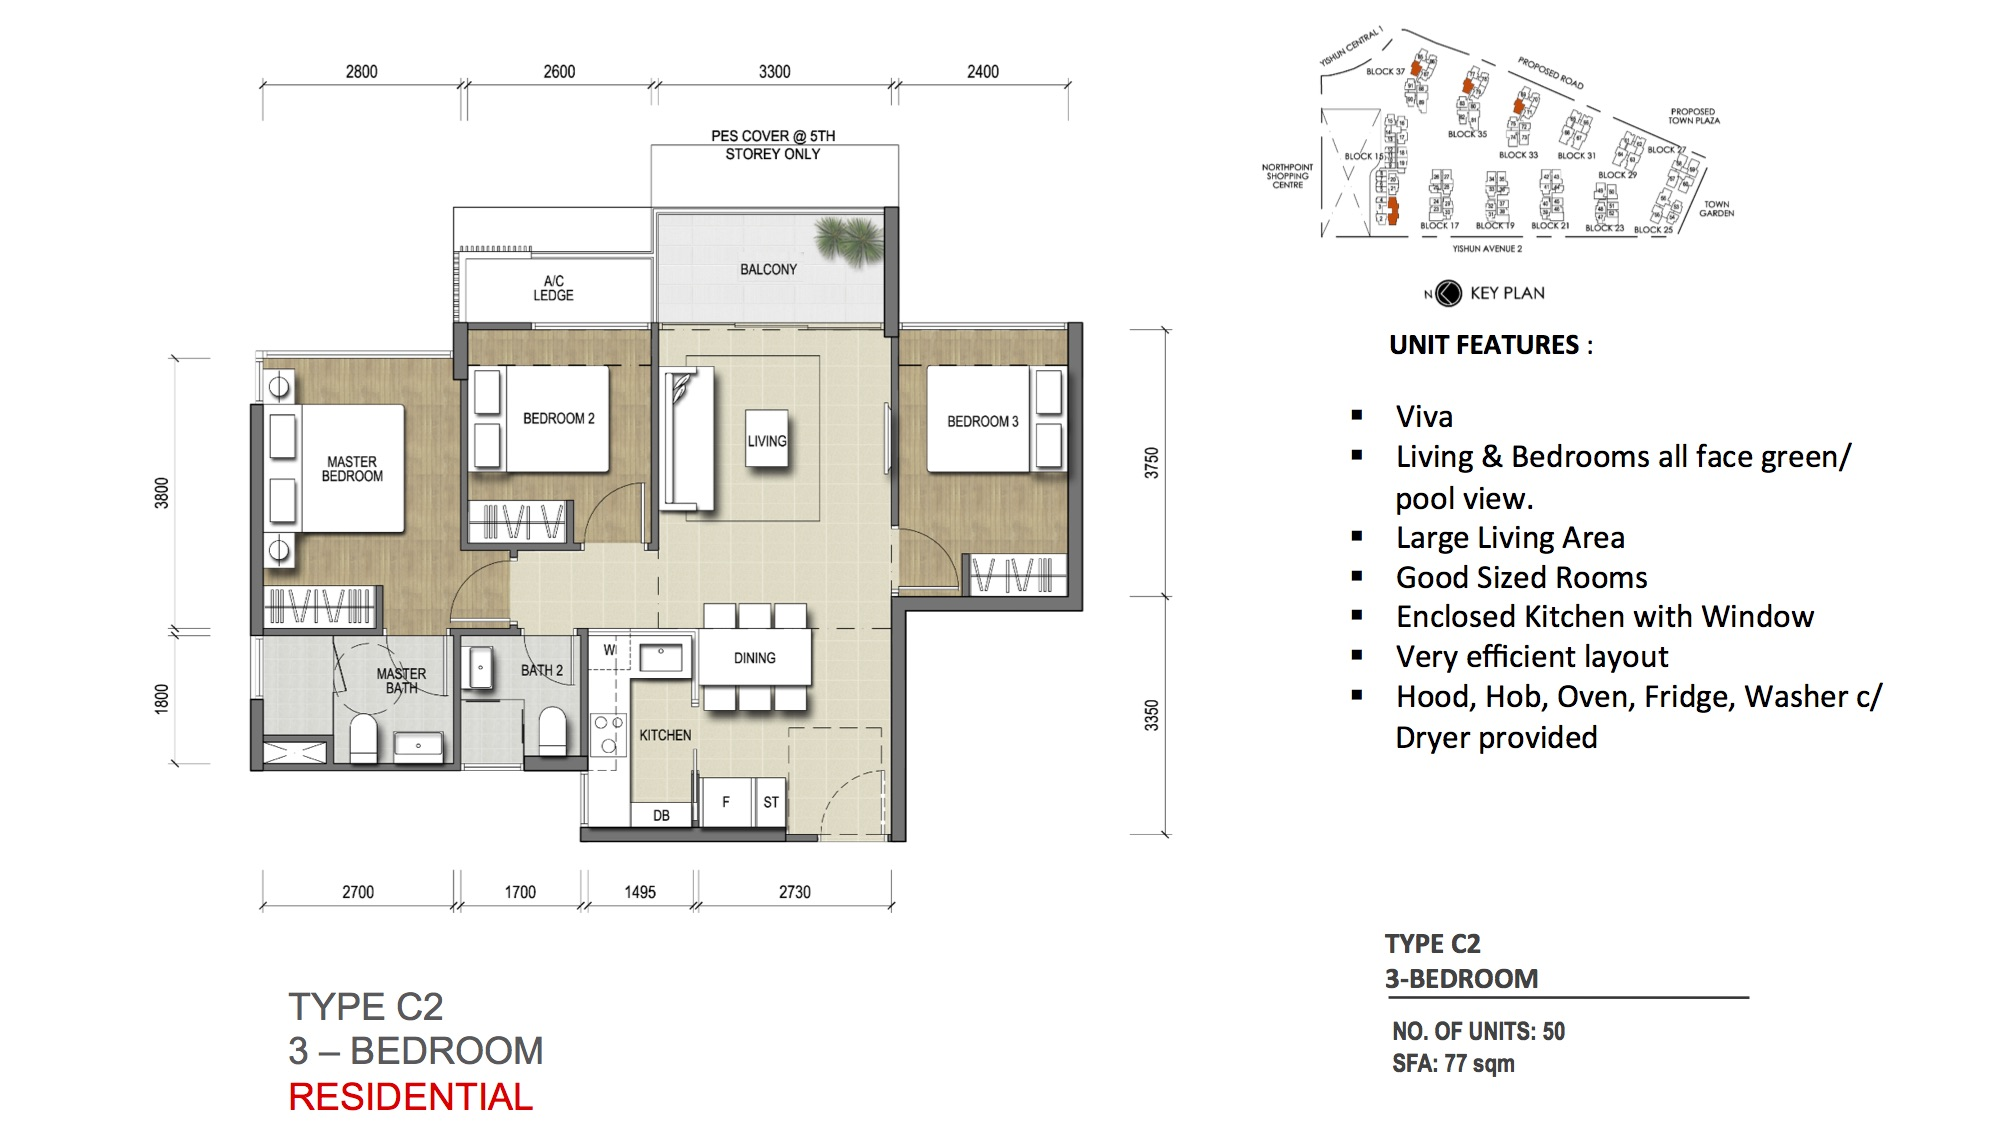 Type C2 - 3 Bedroom